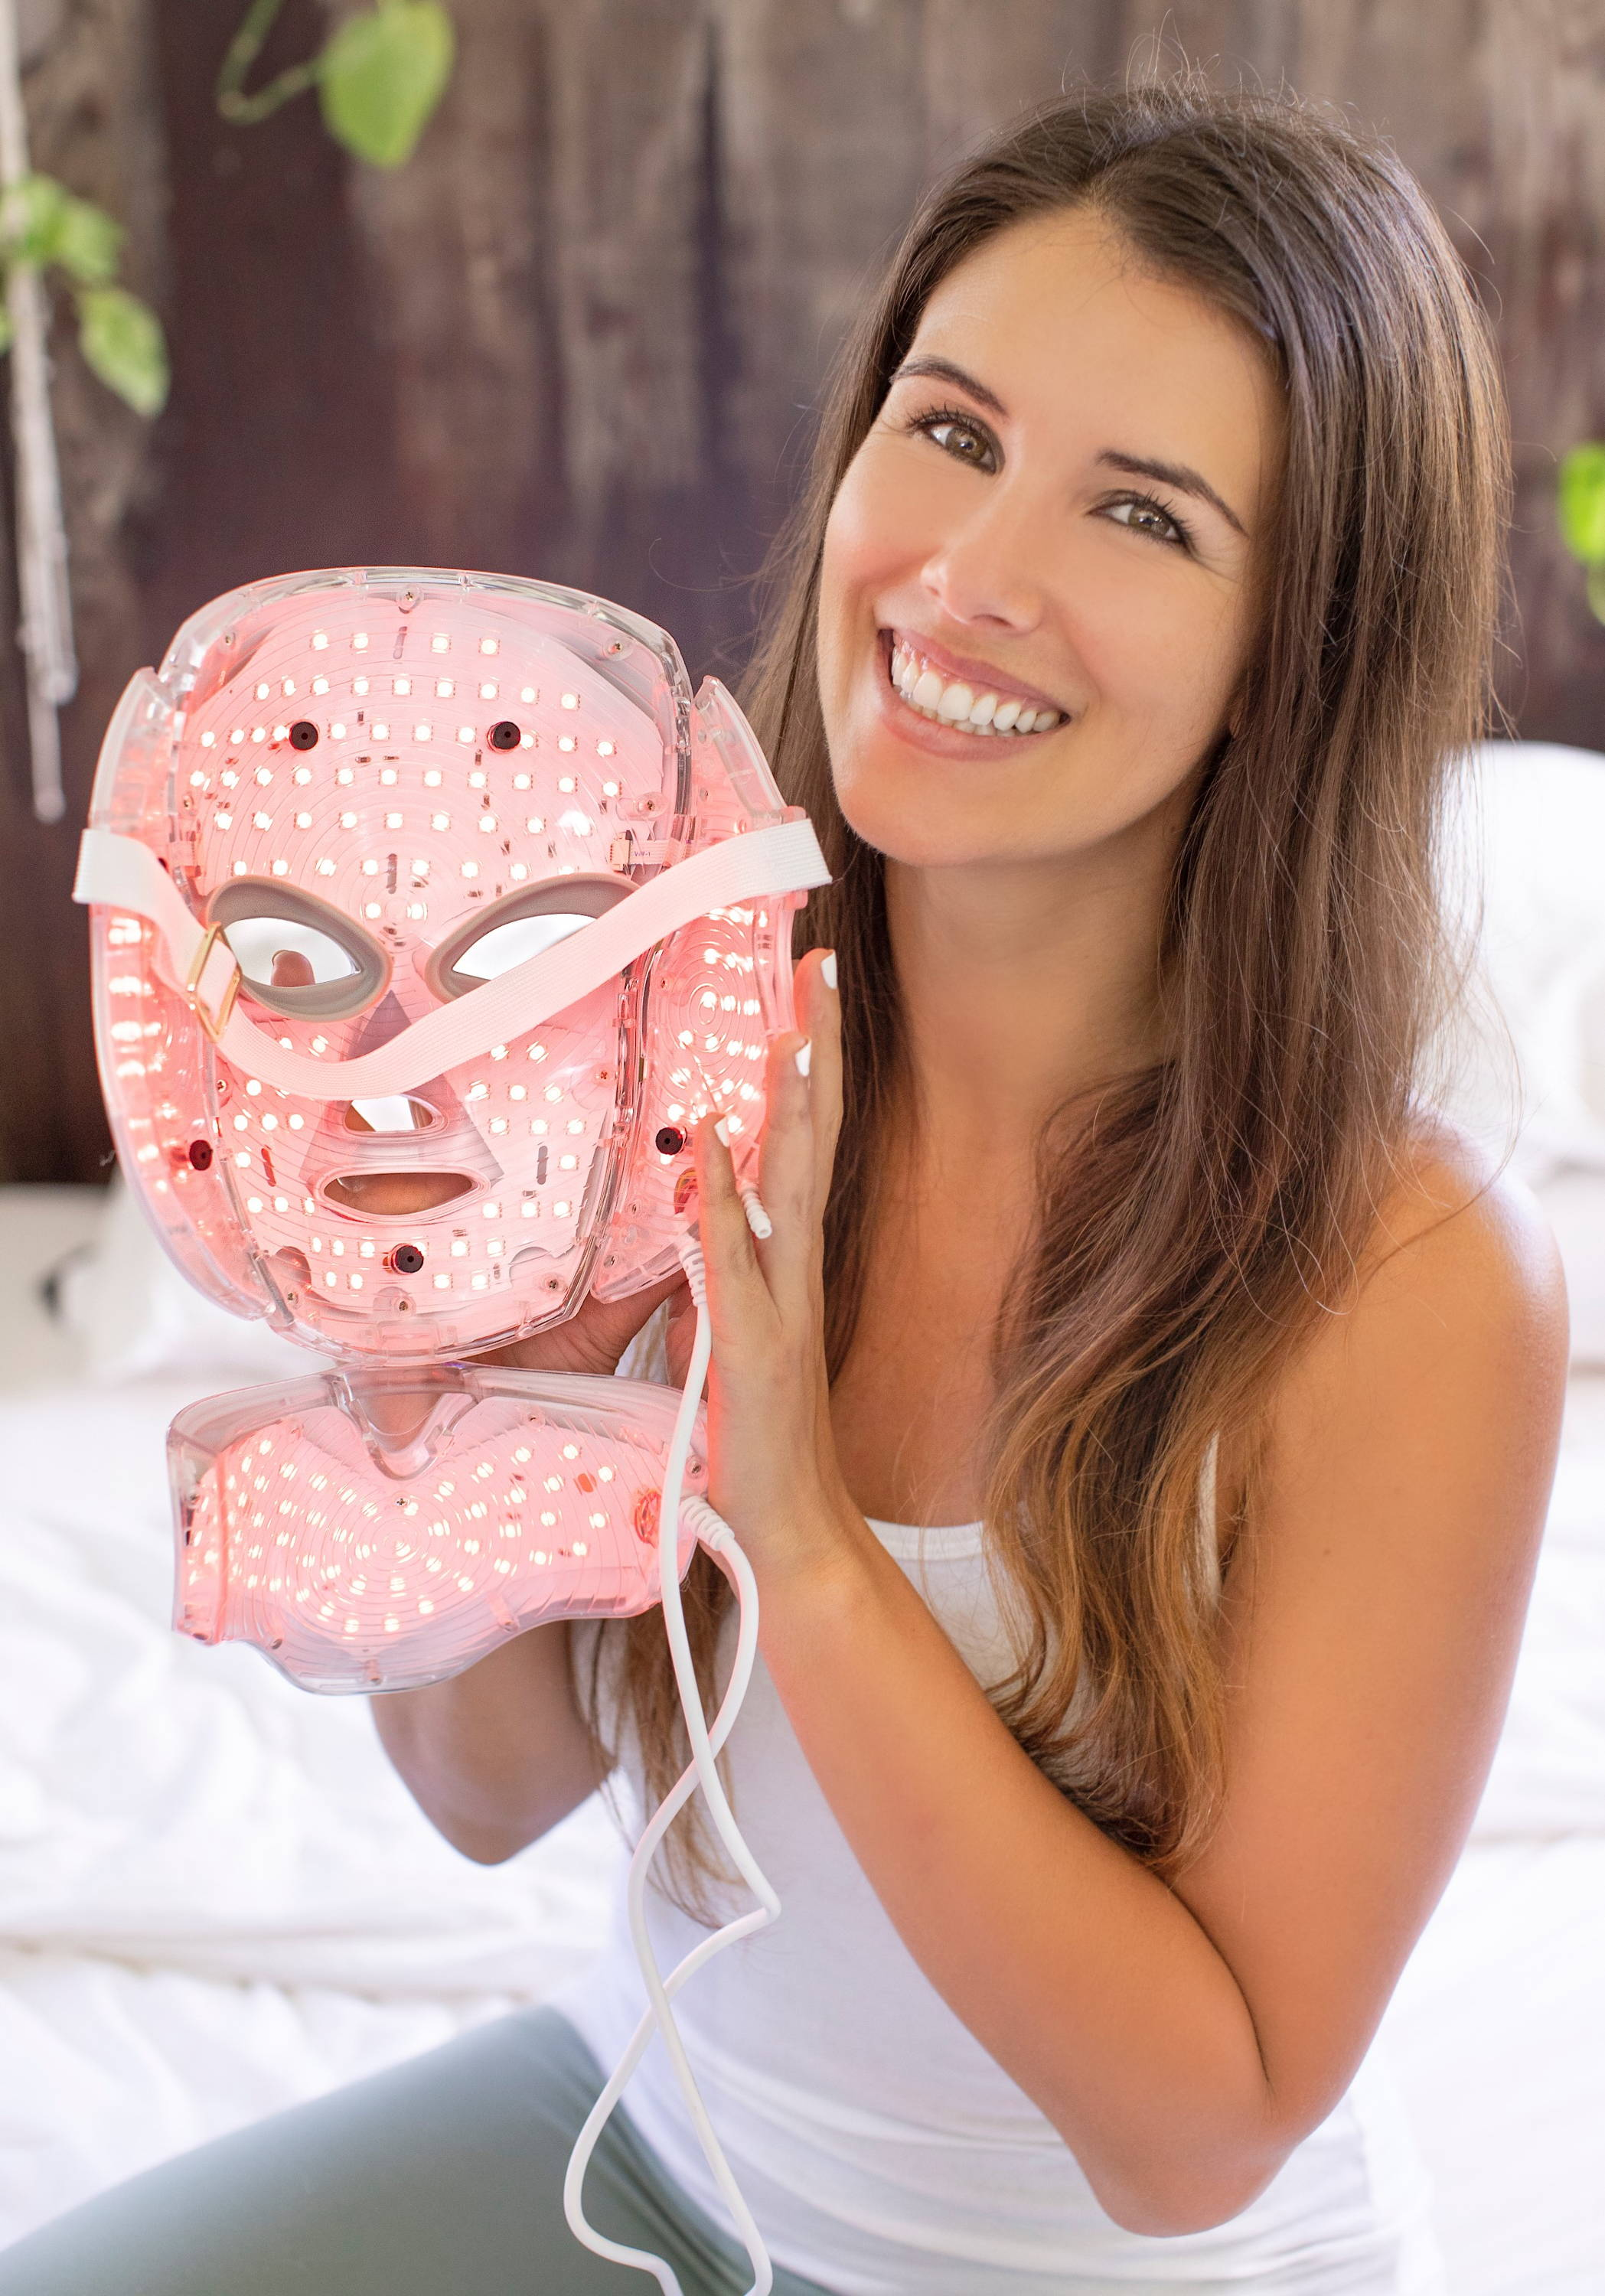 Professional LED Face Mask, LED Light Therapy, Light Therapy Acne Mask, Light Therapy Mask, Light Mask, Light Mask Therapy